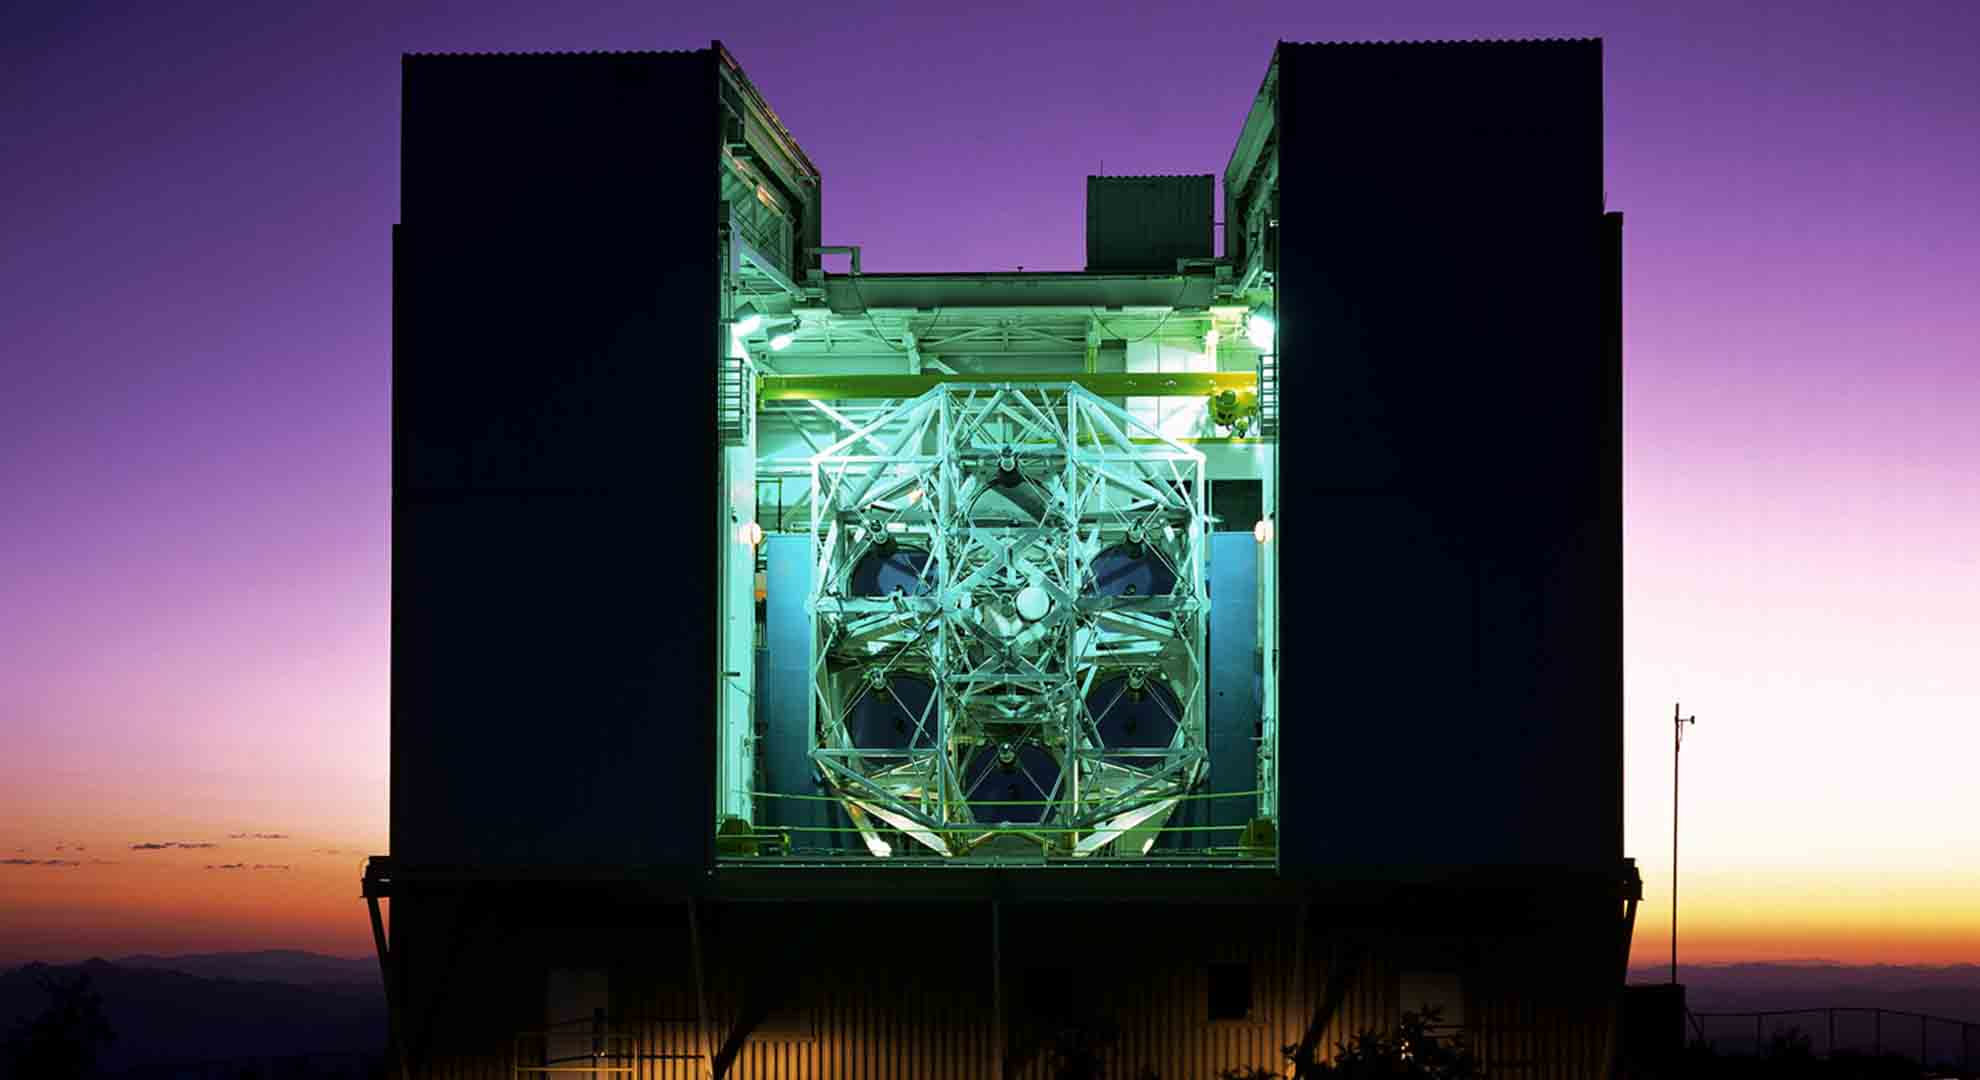 The MMT astronomical observatory is run by the University of Arizona and the Smithsonian Institution